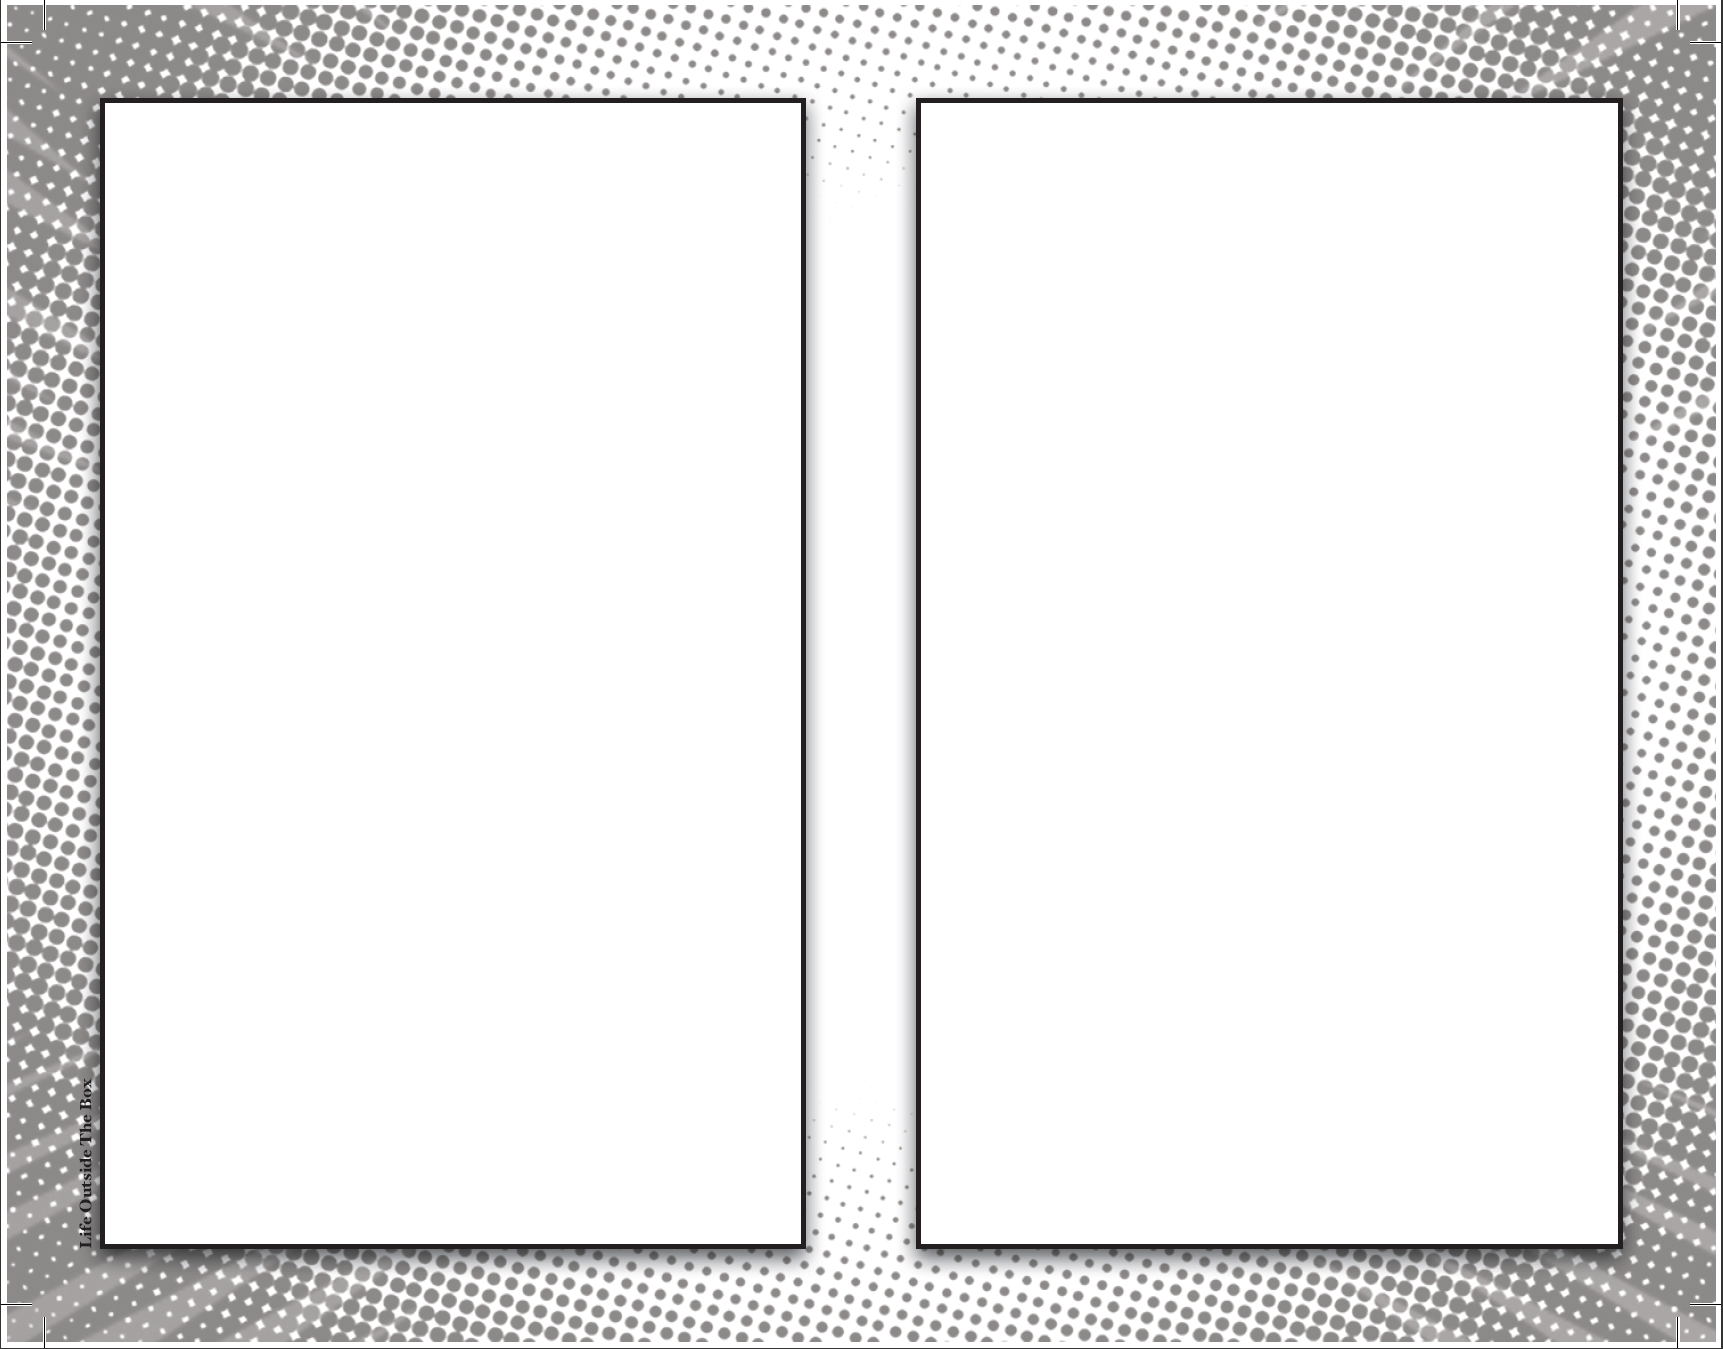 blank comic panel 85 x 11 with two frames per page